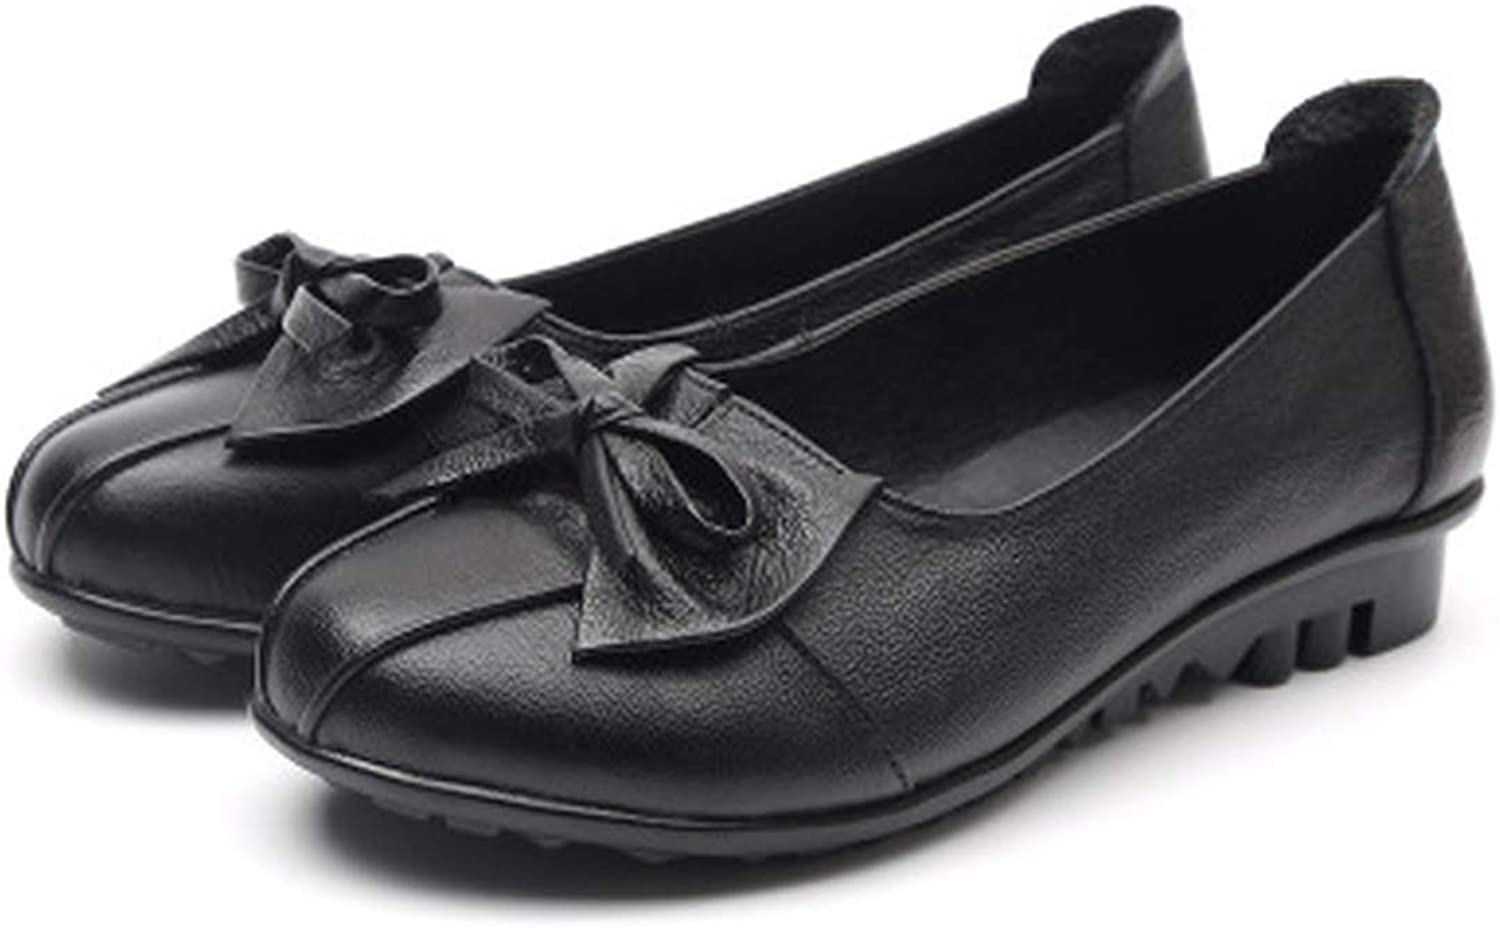 PREtty-2 2019 shoes Woman Genuine Leather shoes 3 colors Loafers Women's Flat shoes Women Flats